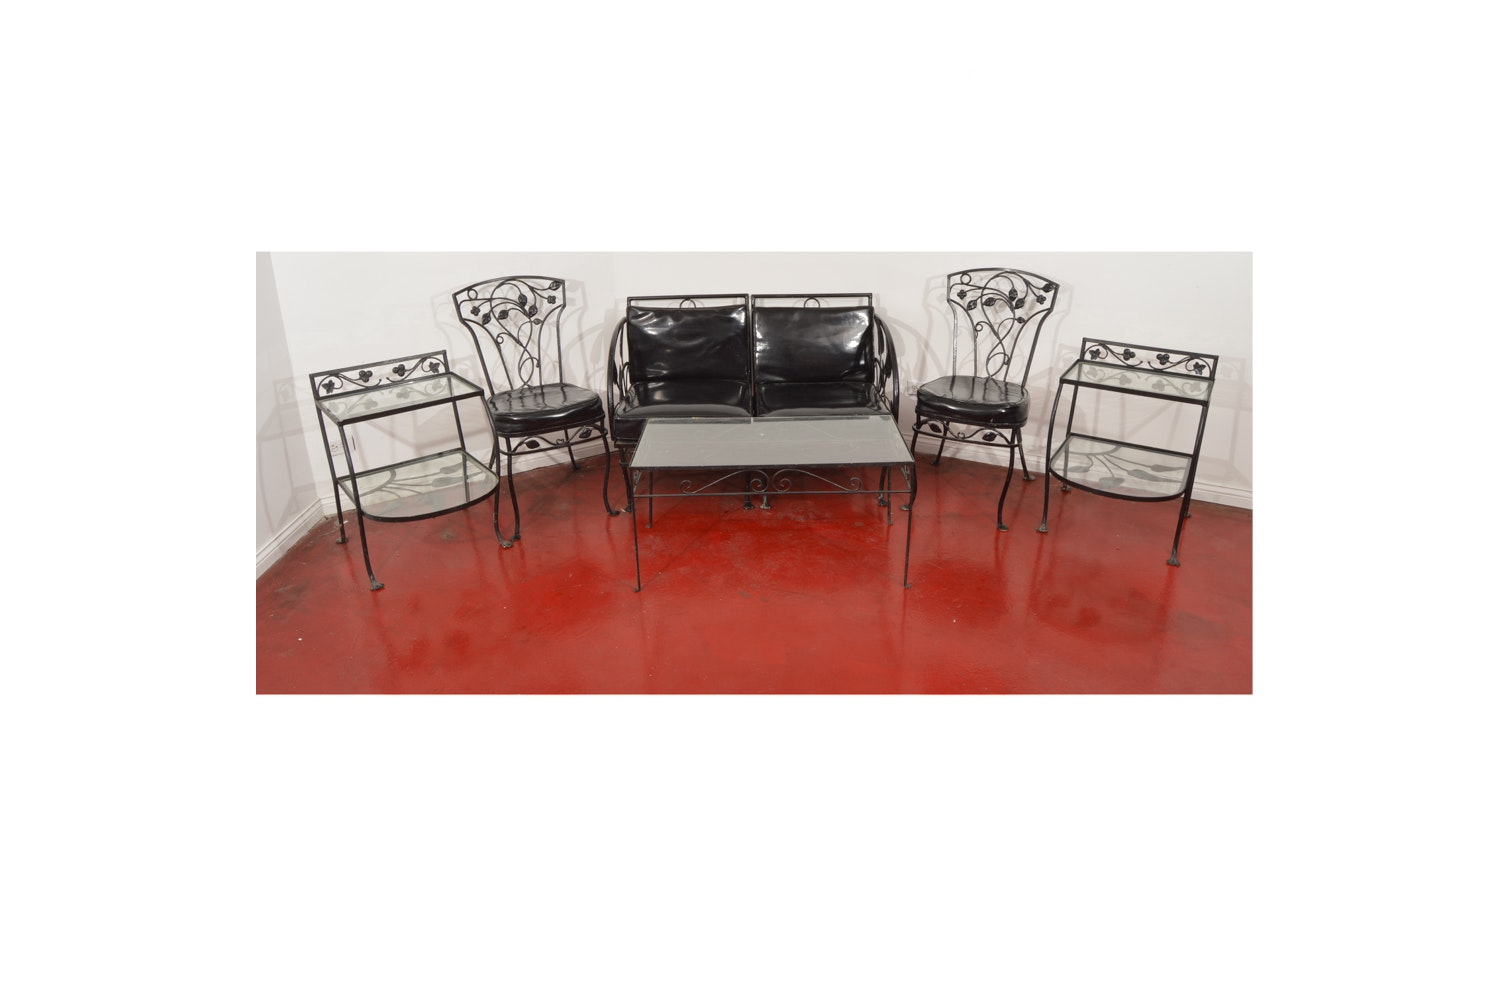 Painted Black Metal Patio Set